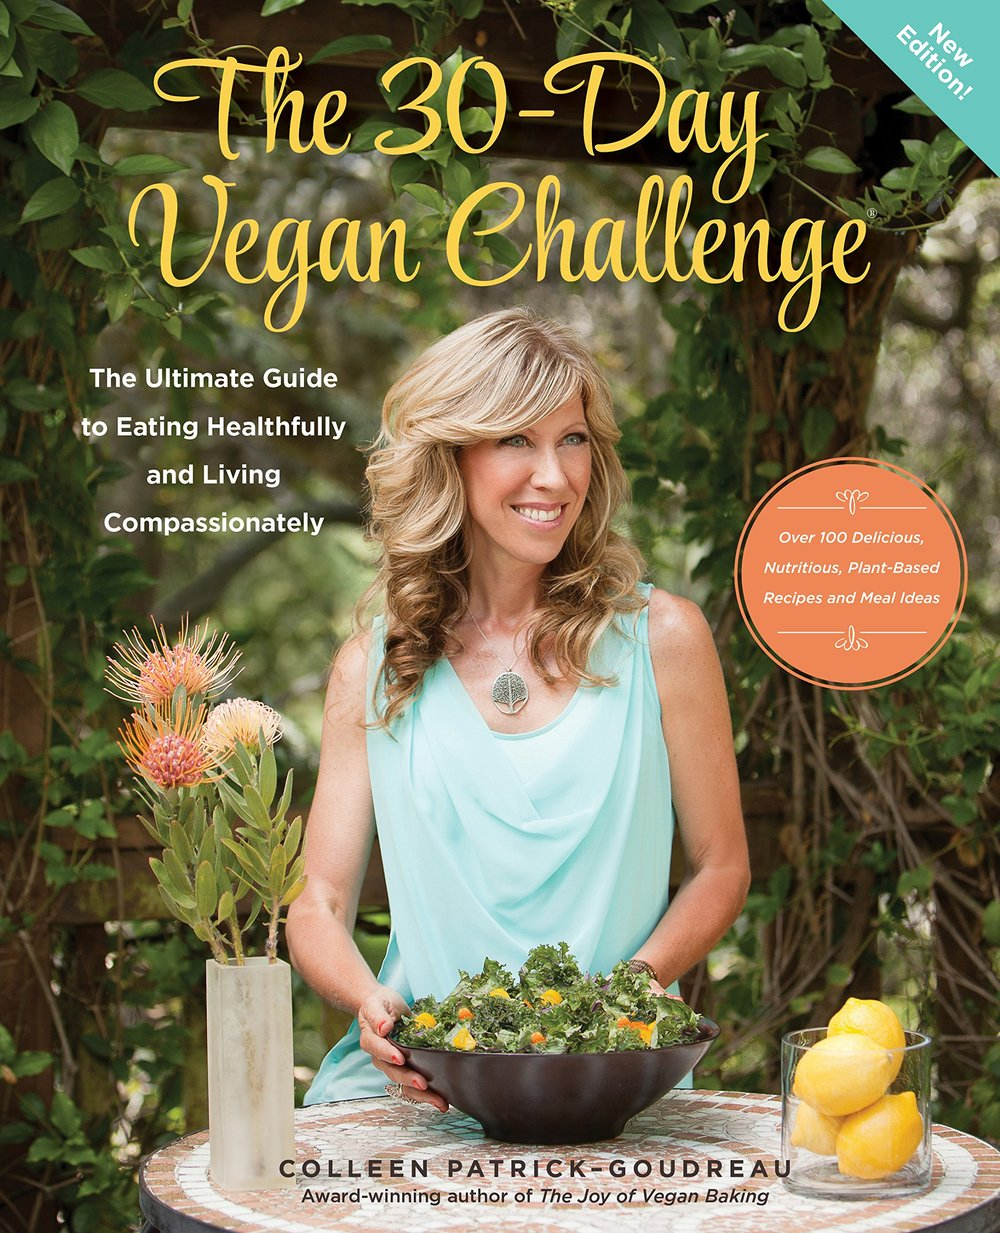 The 30-Day Vegan Challenge: The Ultimate Guide to Eating Healthfully and Living Compassionately - by Colleen Patrick-Goudreau - Take the 30-Day Vegan Challenge and see the difference a plant-based diet makes in your life! Whether you want to improve your overall health, shed a few pounds, demonstrate your compassion for animals, or help the environment, Colleen Patrick-Goudreau, dubbed